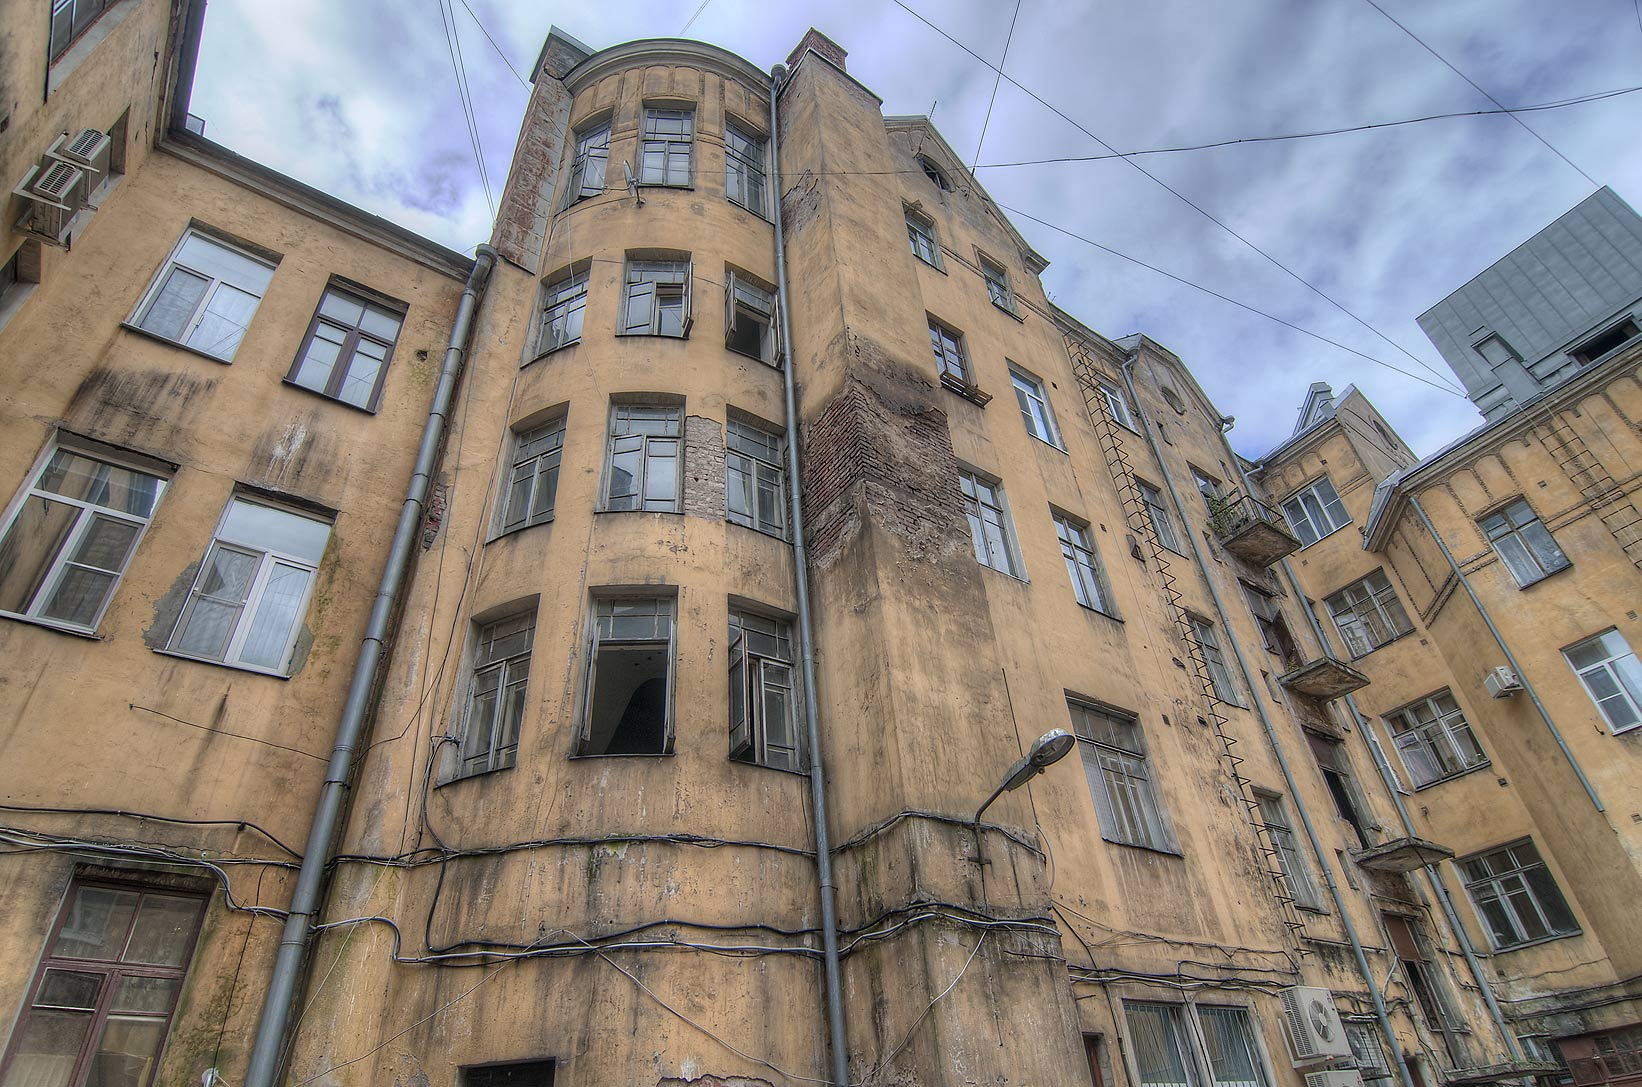 Back view of buildings 6 Lenina St.. Vyborg, Russia